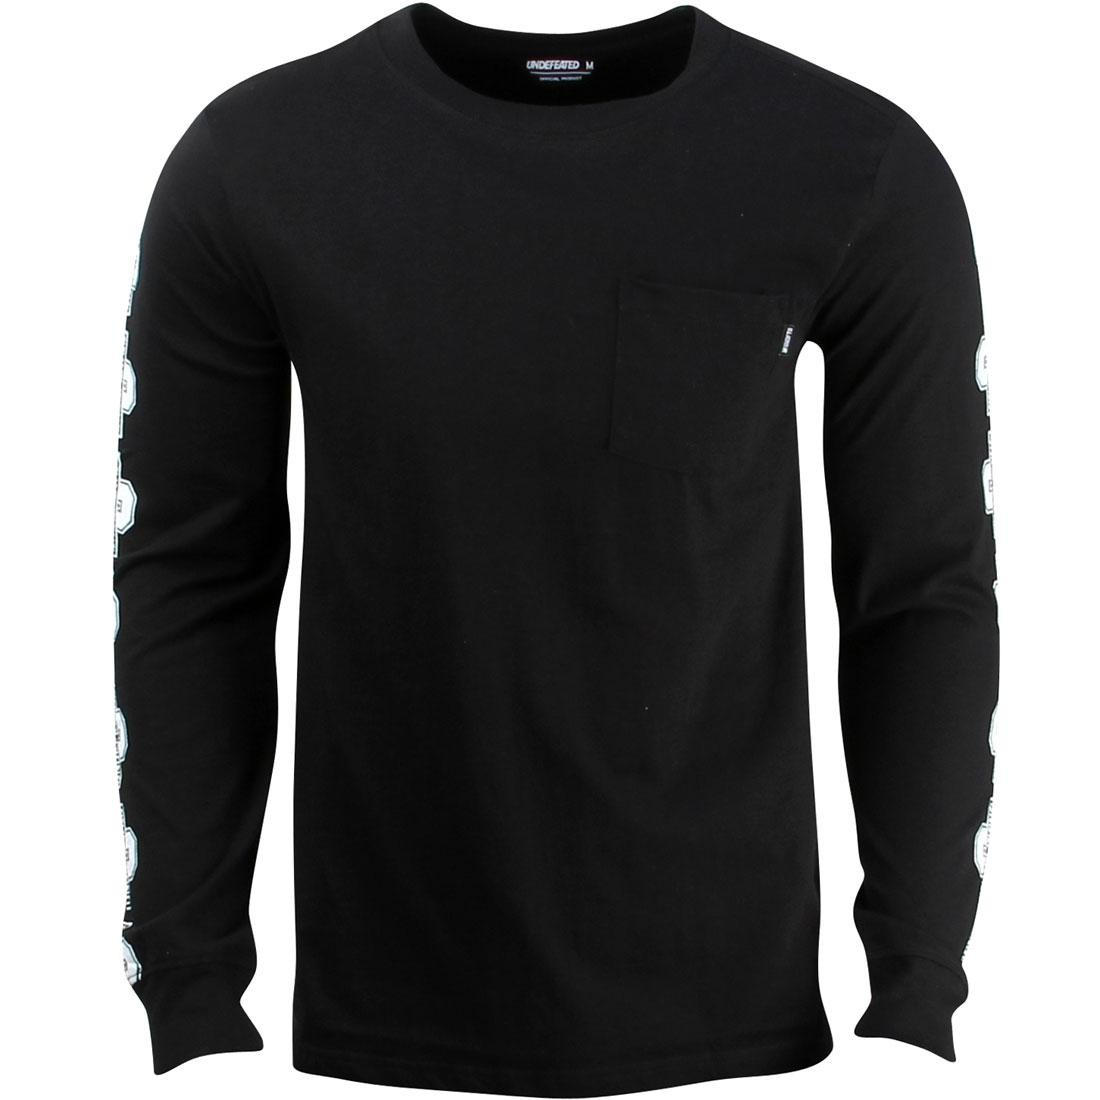 Undefeated Men UNDFTD U Long Sleeve Shirt (black)